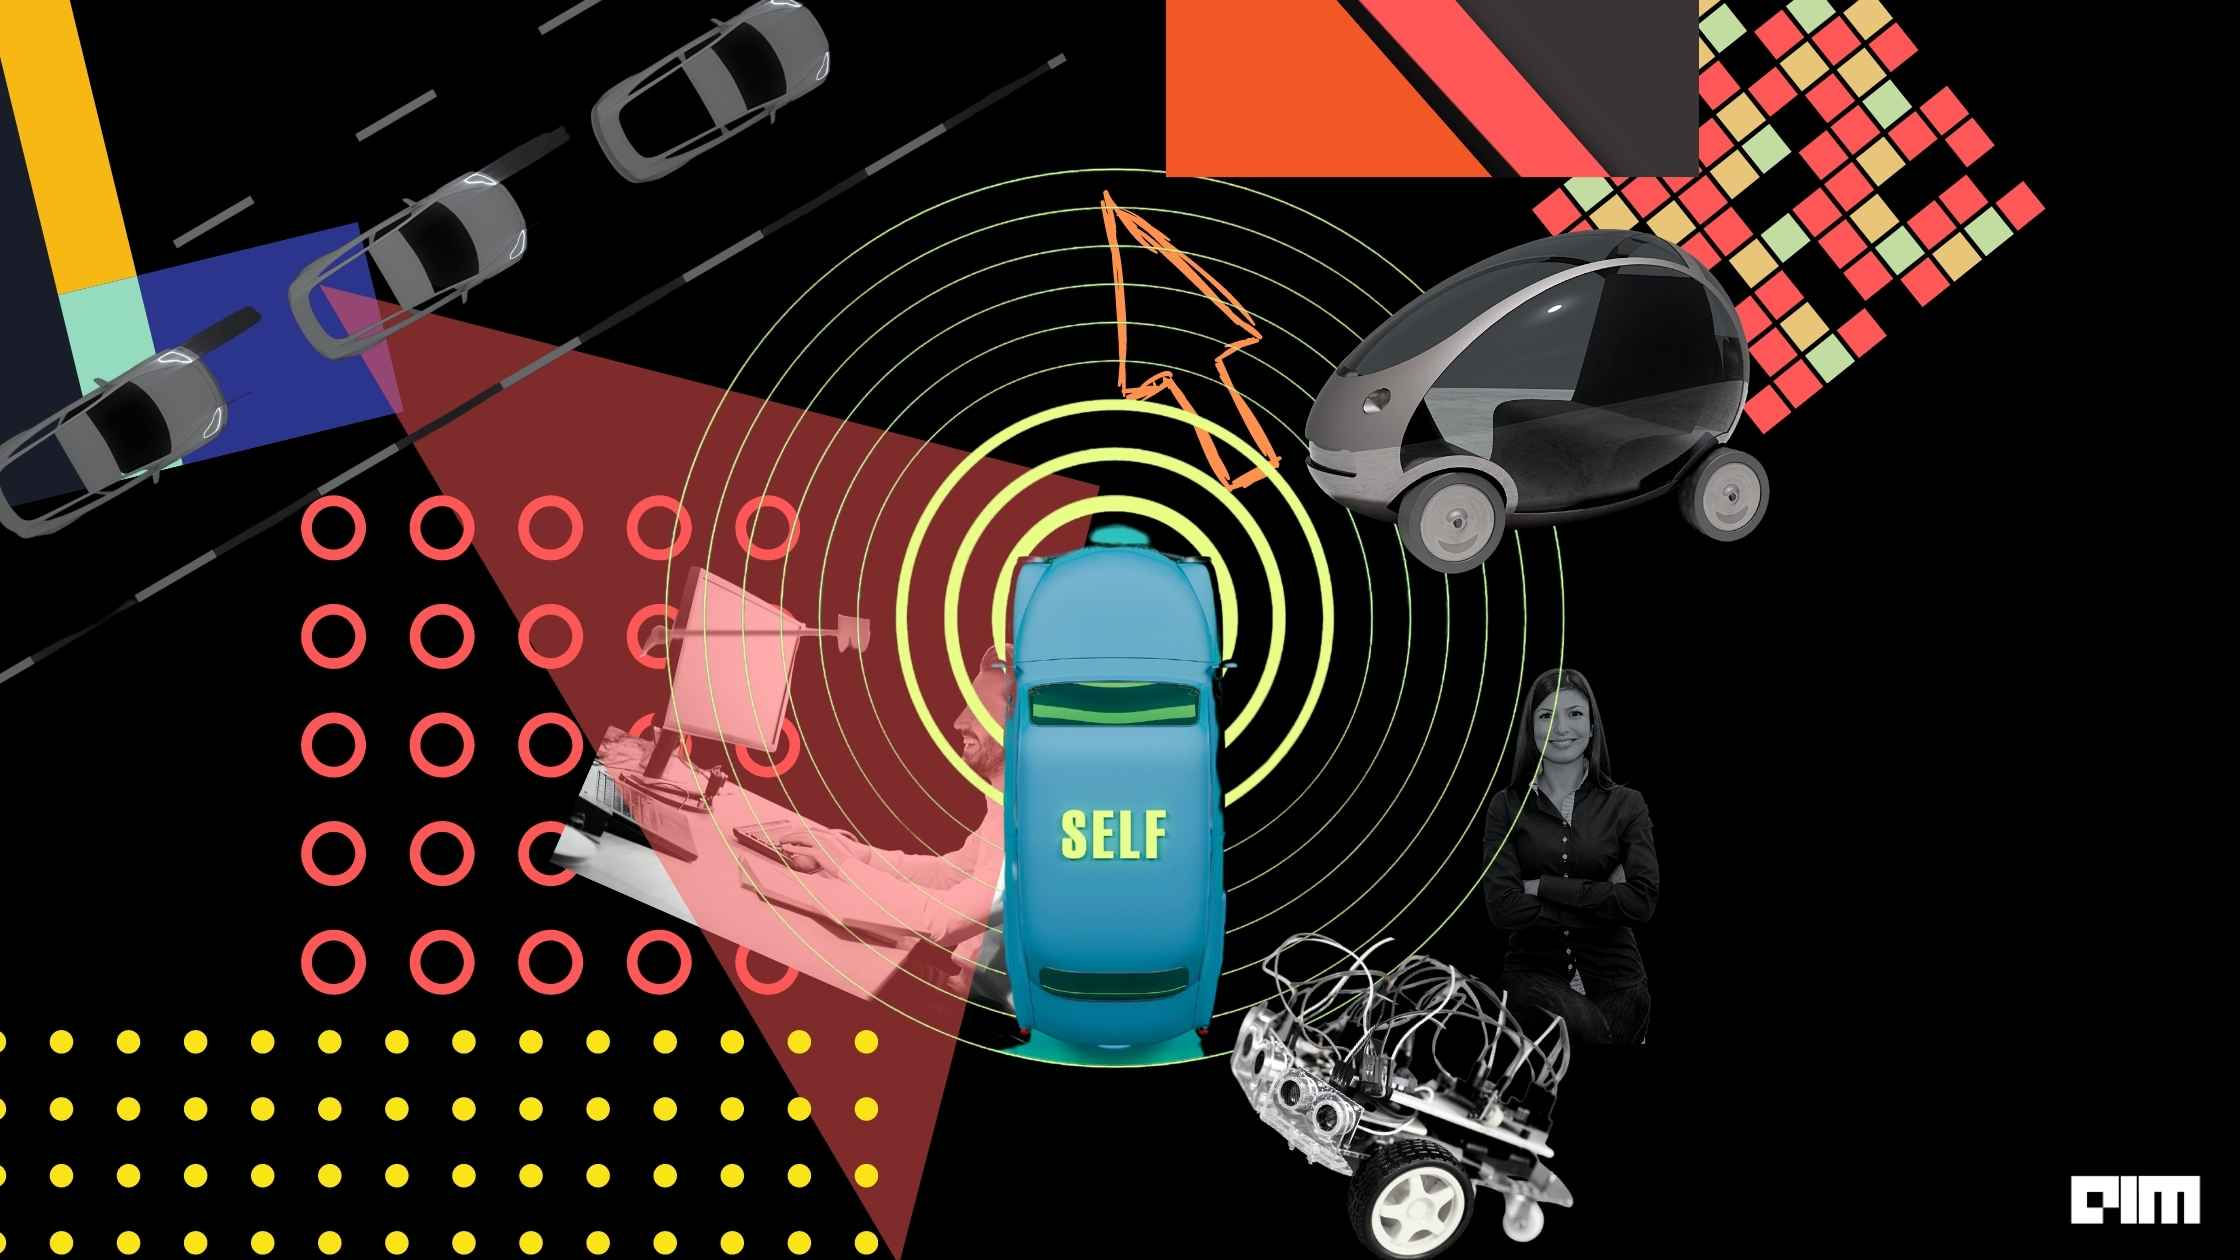 Top 8 Online Resources To Get Started With Self-Driving Vehicles In 2021